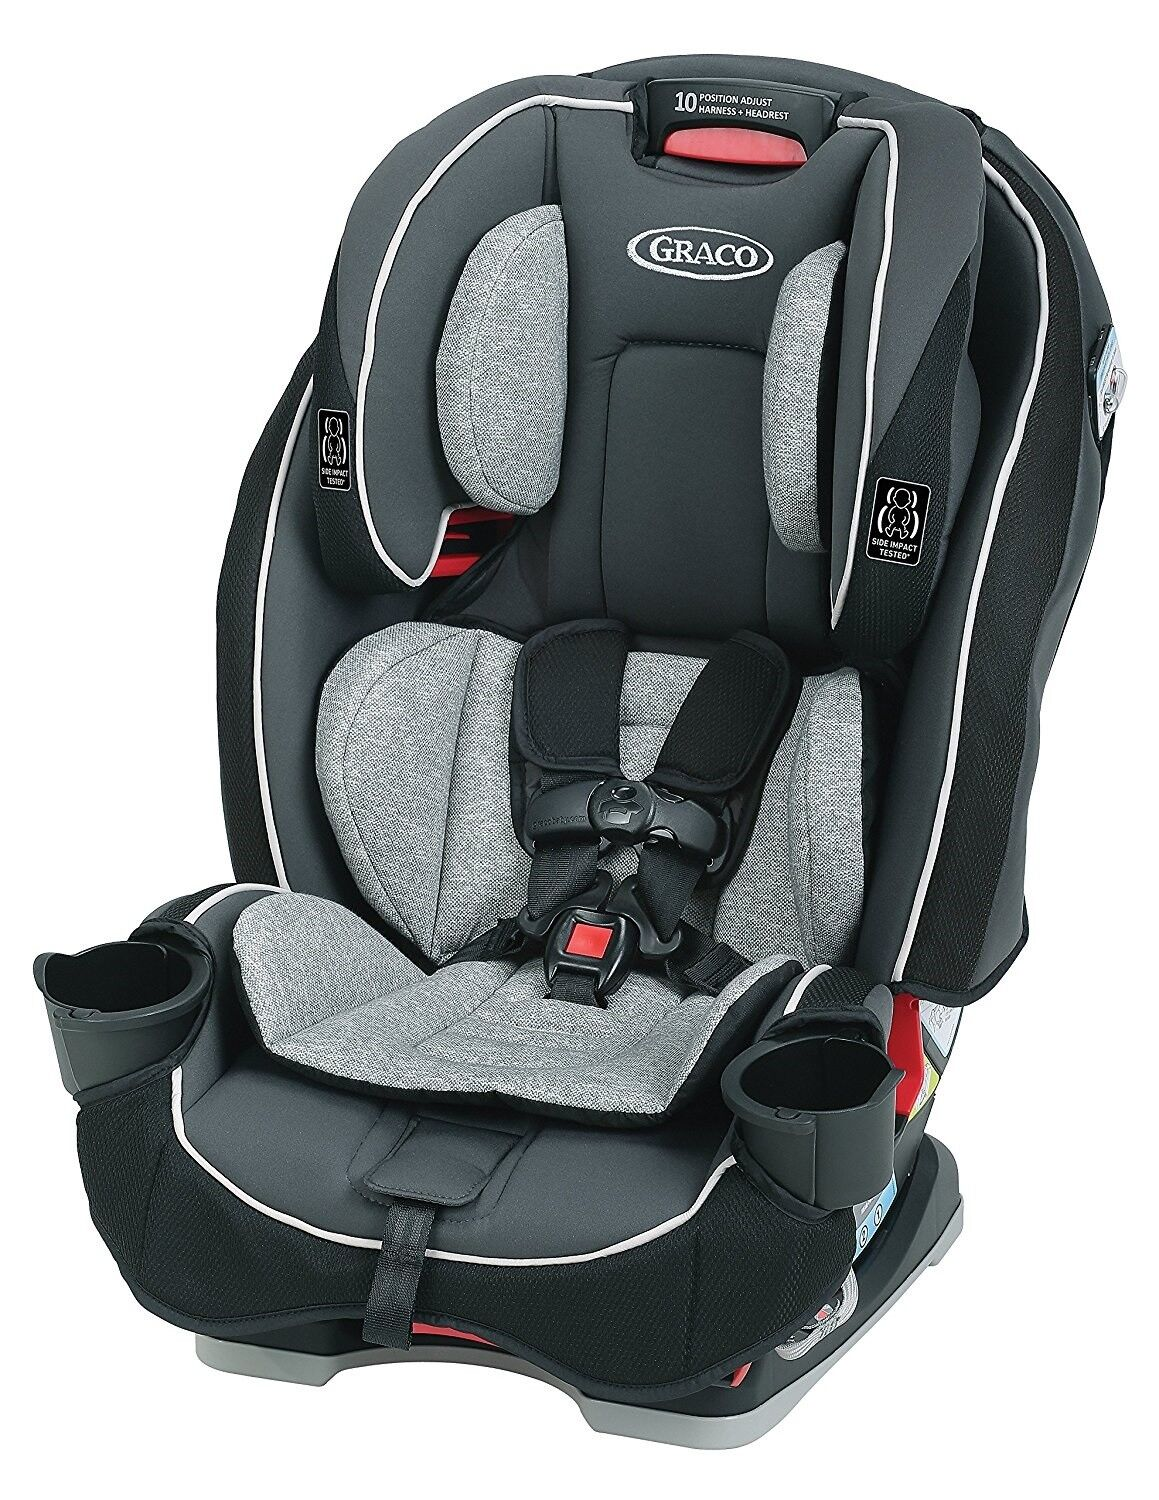 Plush 1 Harness Booster Polar 1 Harness Booster Reviews Graco Nautilus 65 3 Of Available Graco Baby Slimfit Convertible Car Seat Infant Child Booster Graco Nautilus 65 3 baby Graco Nautilus 65 3 In 1 Harness Booster